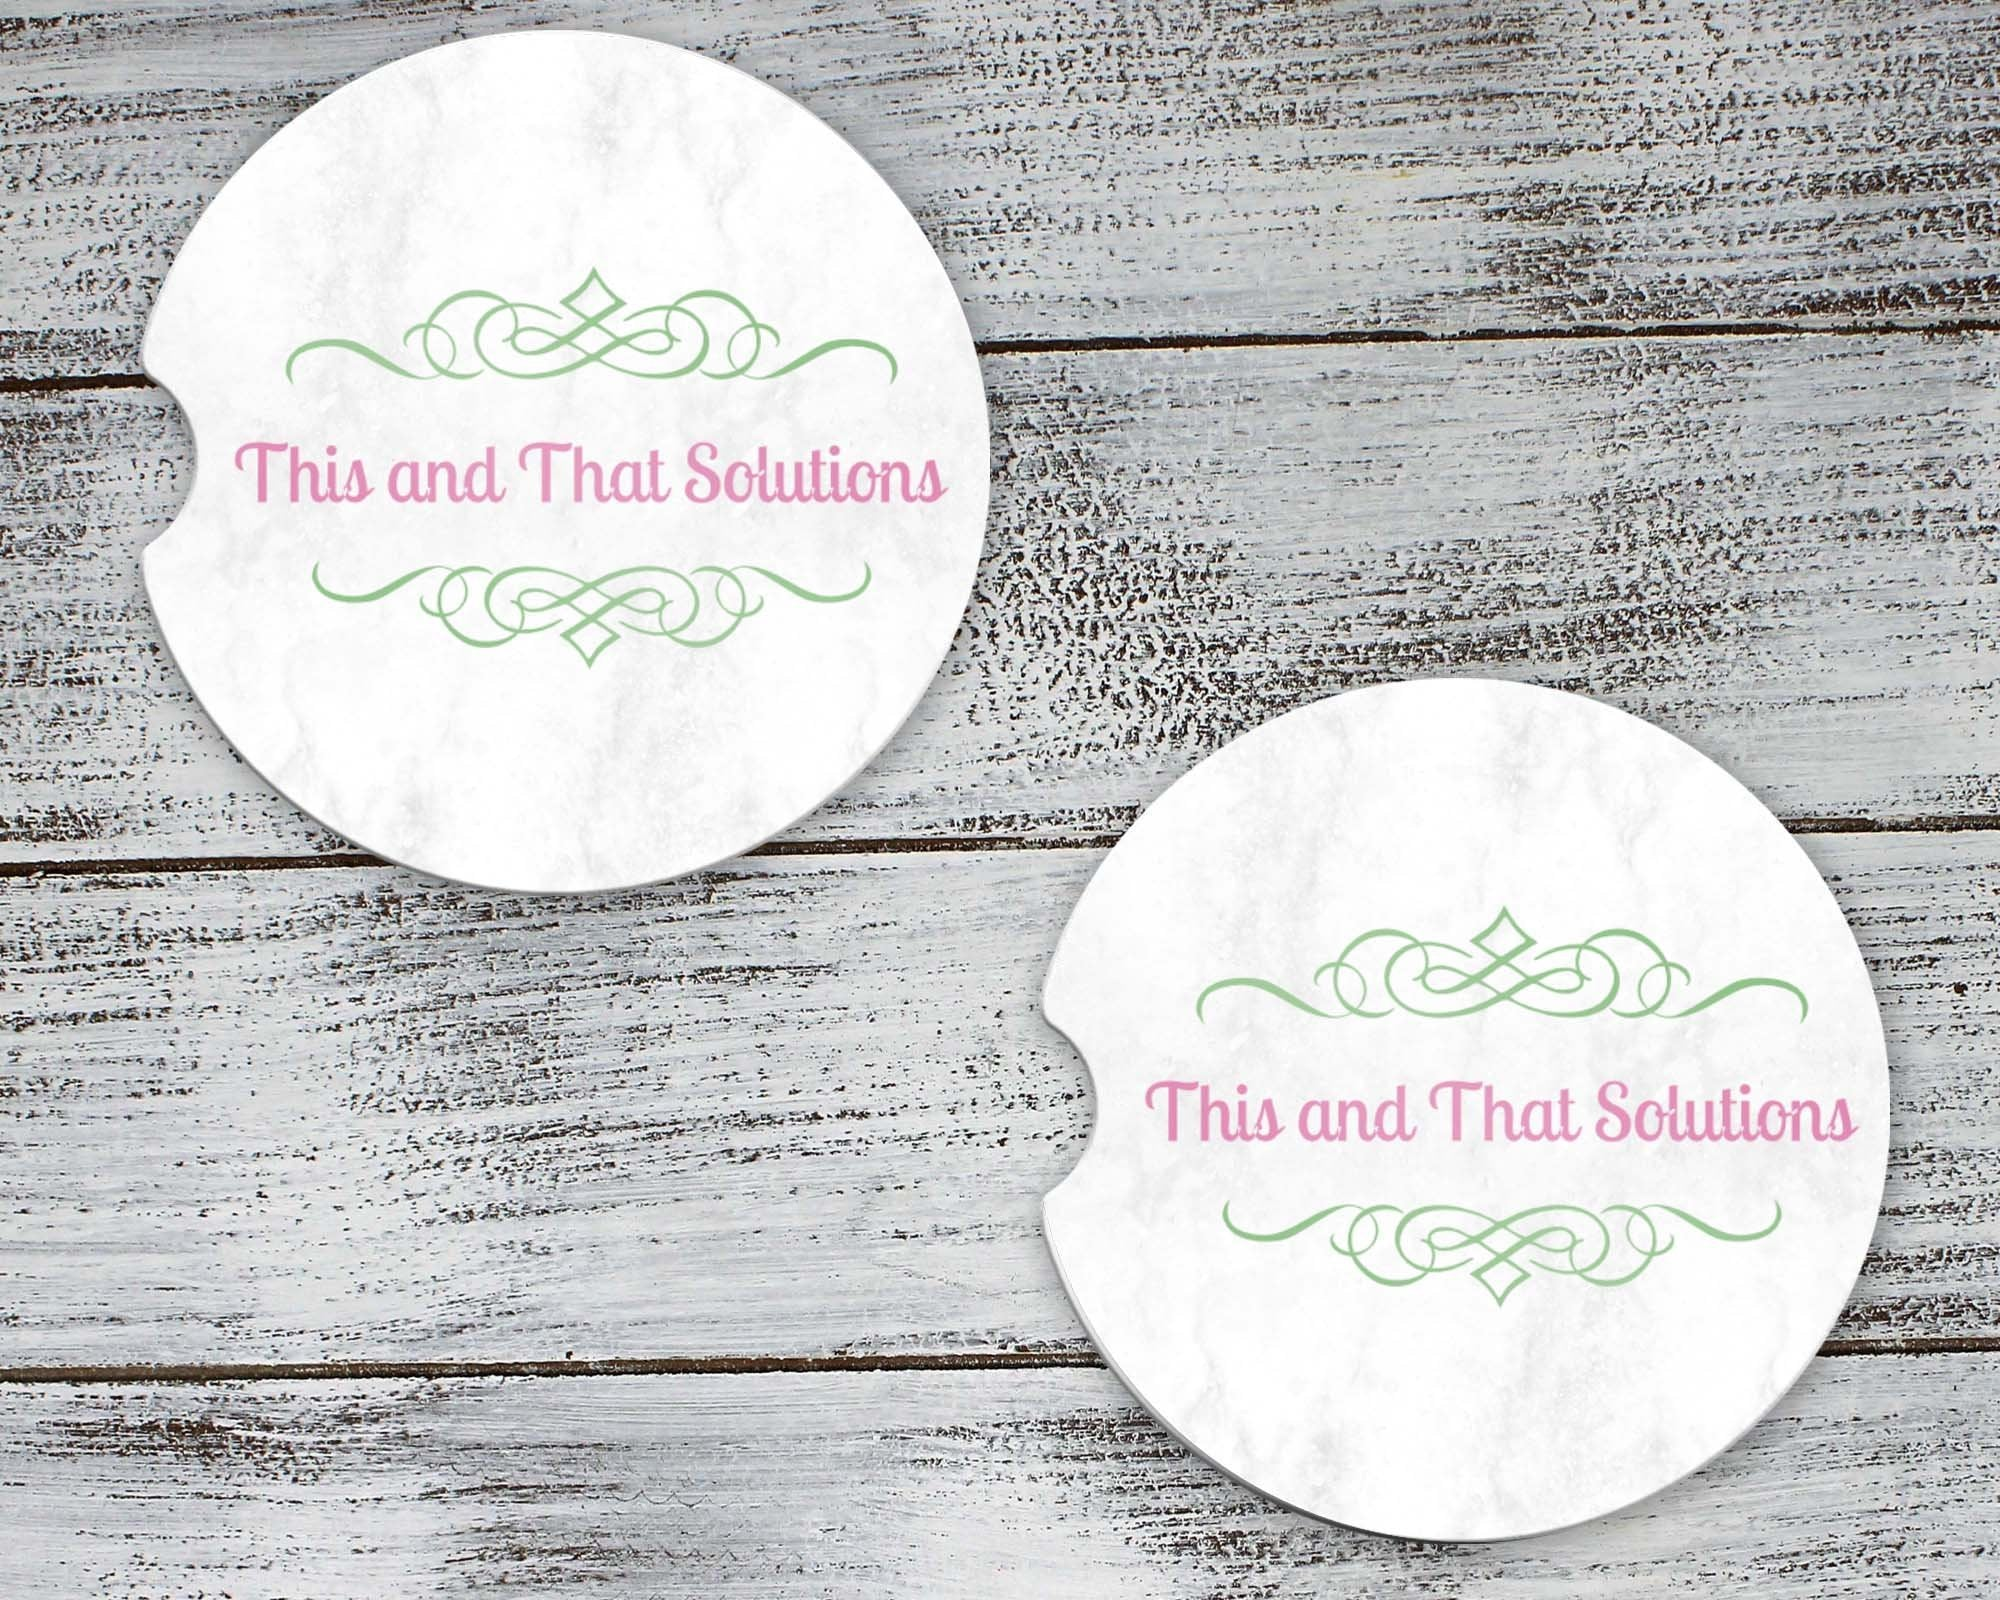 Car Accessories | Personalized Car Coasters | Custom Car Accessories | Company Logo | Set of 2 | This and That Solutions | Personalized Gifts | Custom Home Décor